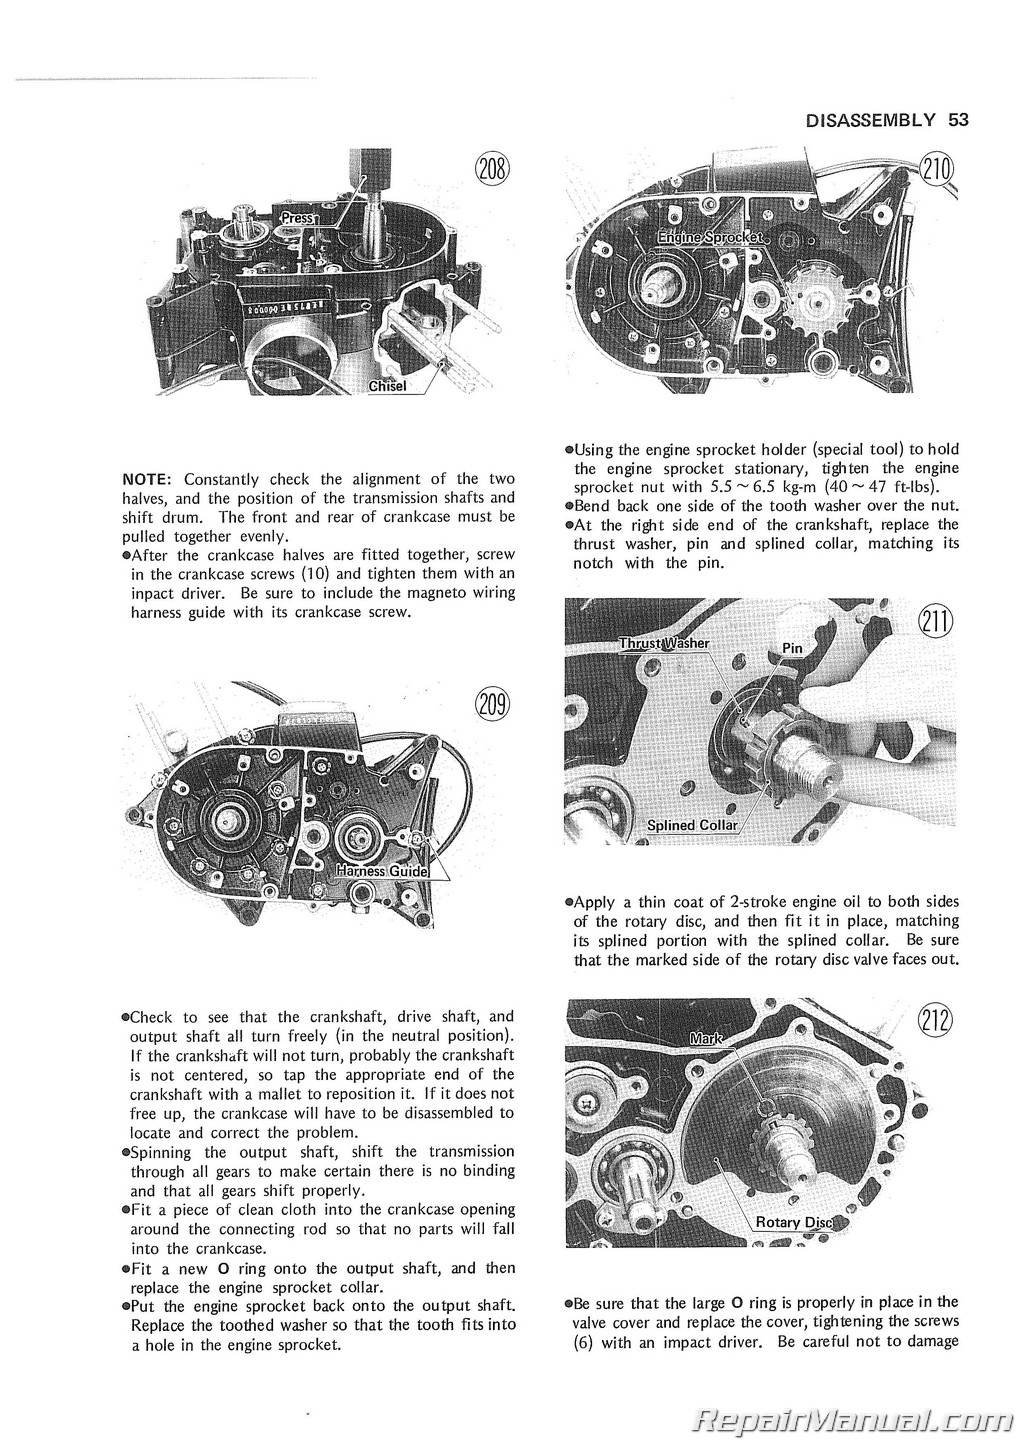 ke175 service manual 1976 kawasaki ke175b1 repair manuals online pages from r99997 719 01 3 page 1